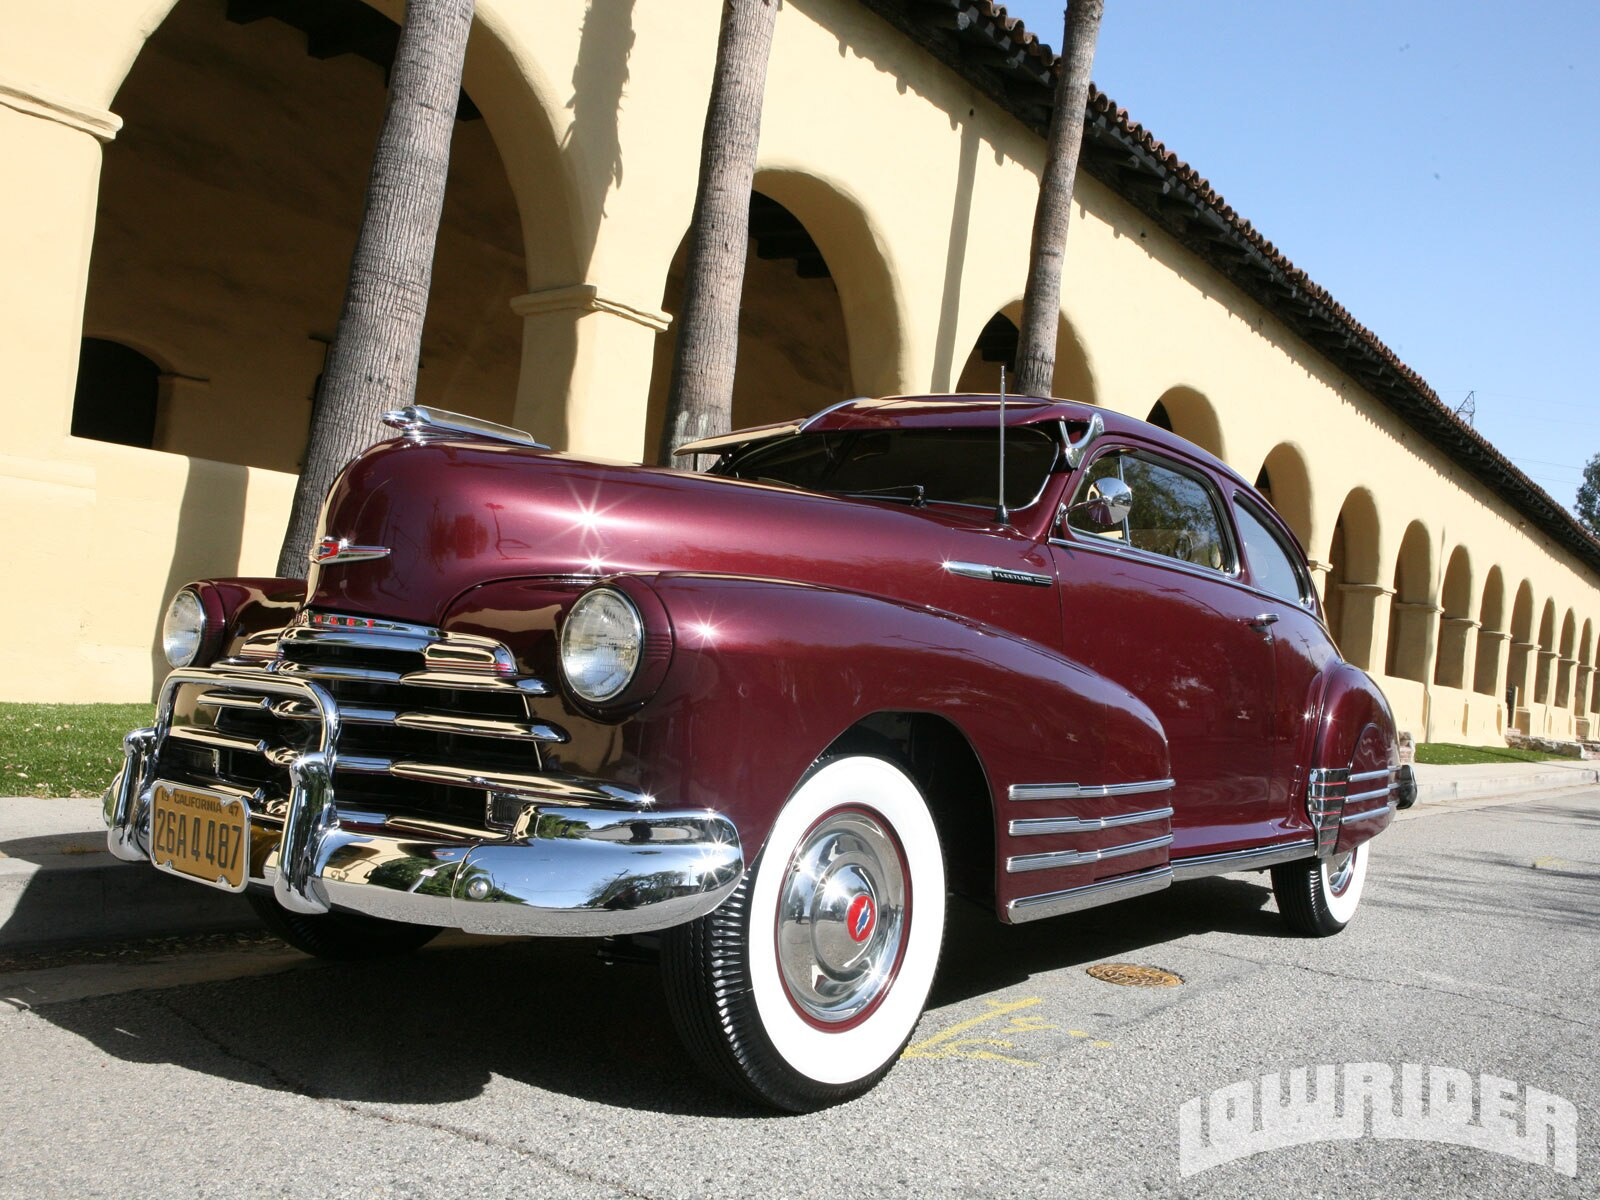 1110-lrmp-13-o-1947-chevrolet-fleetline-driver-side-front-view2